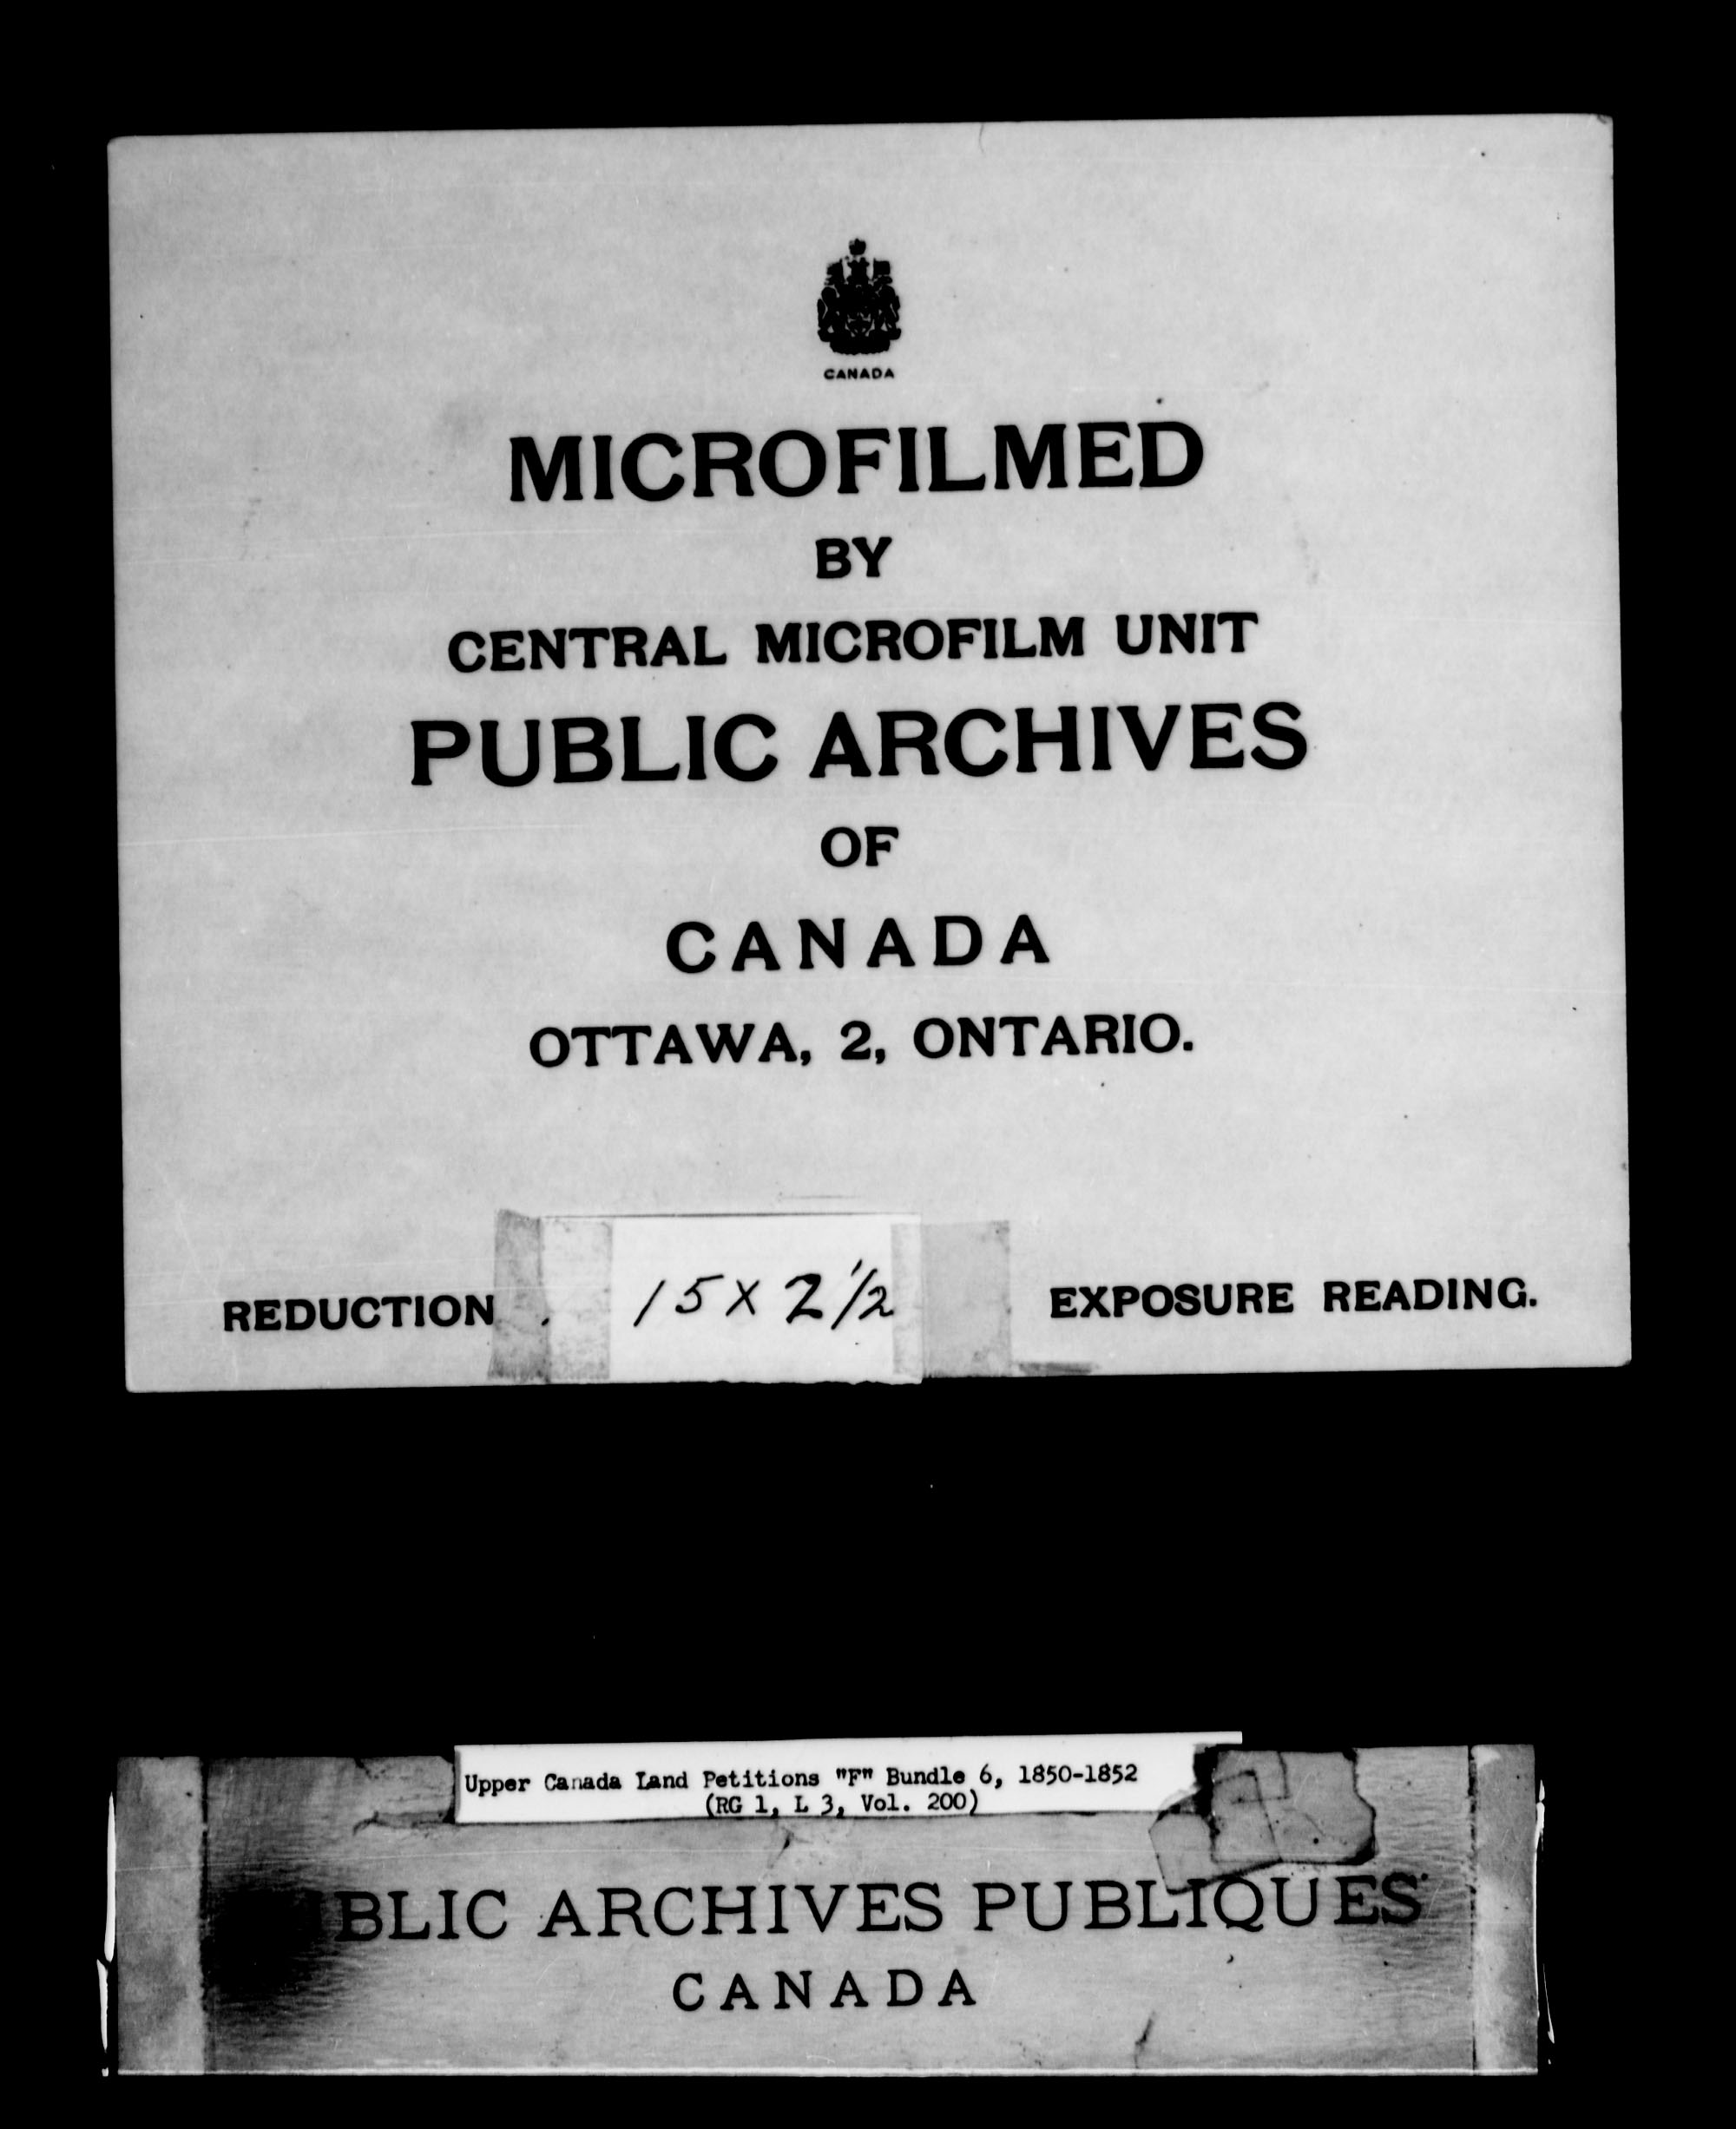 Title: Upper Canada Land Petitions (1763-1865) - Mikan Number: 205131 - Microform: c-2026